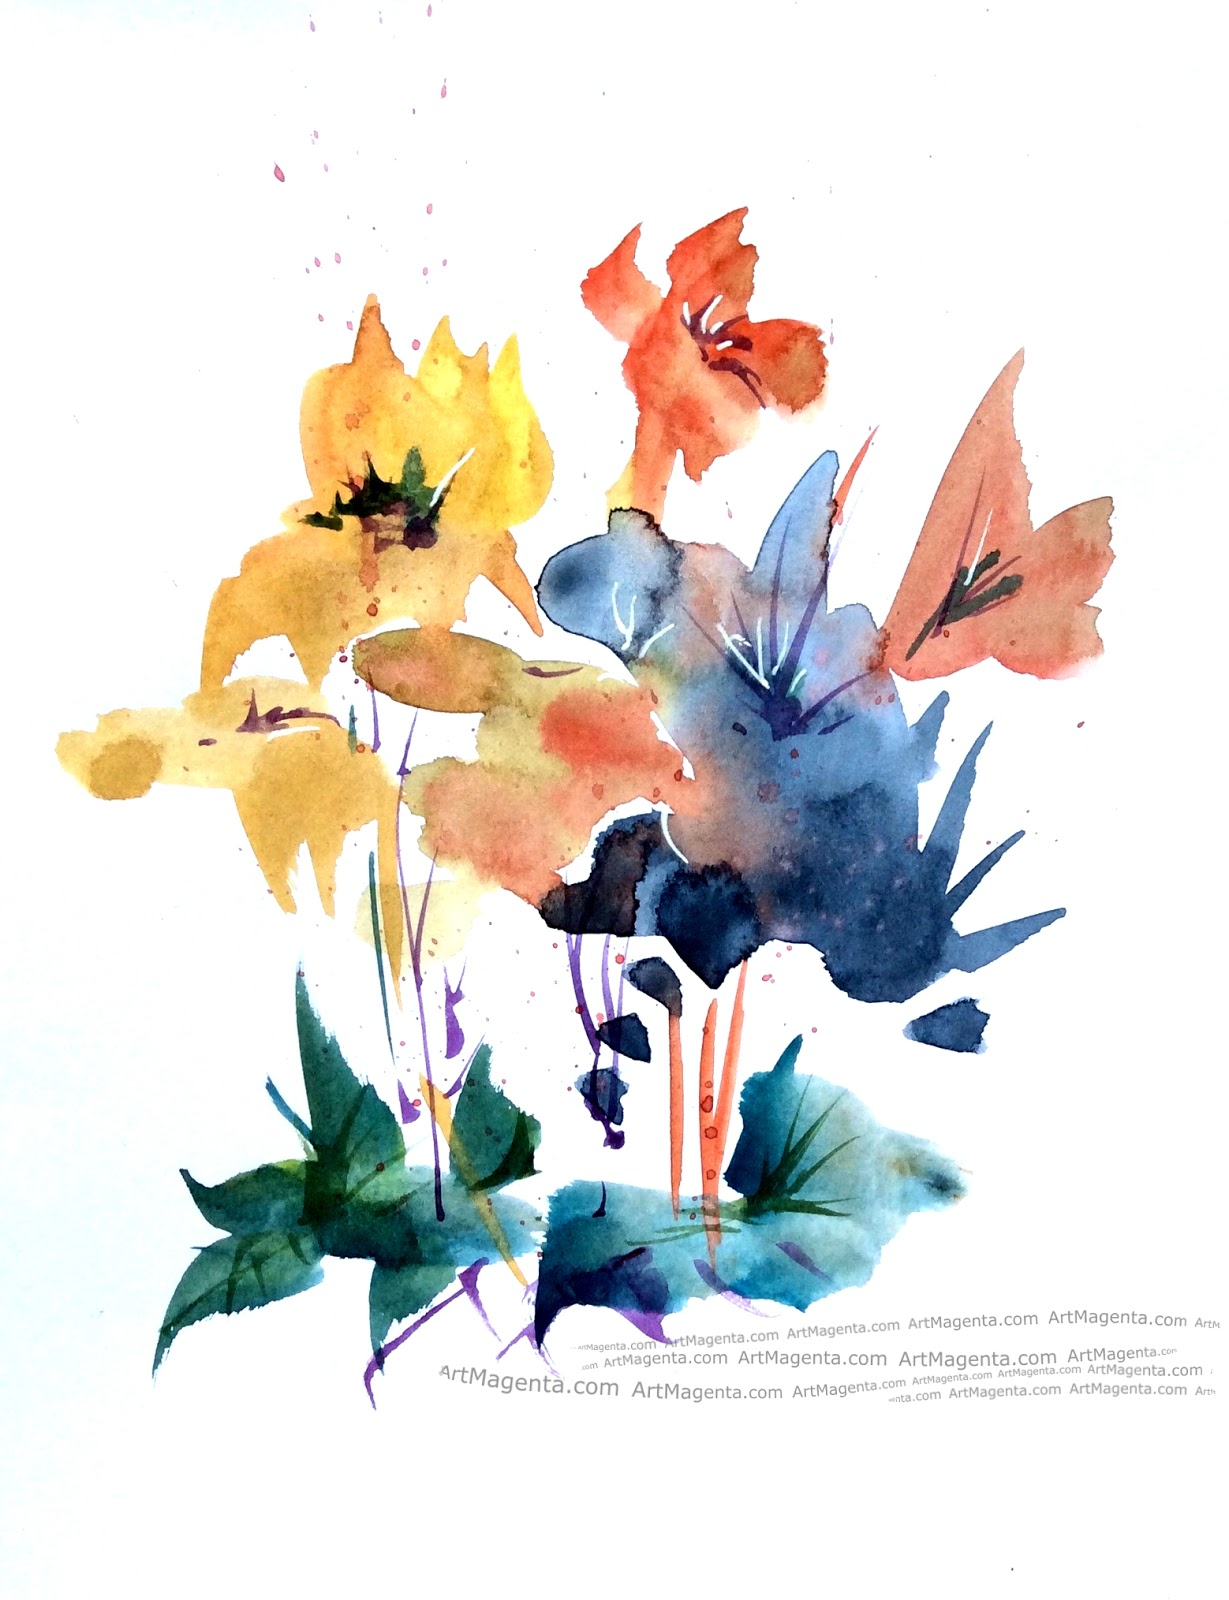 Water color flowers by Artmagenta